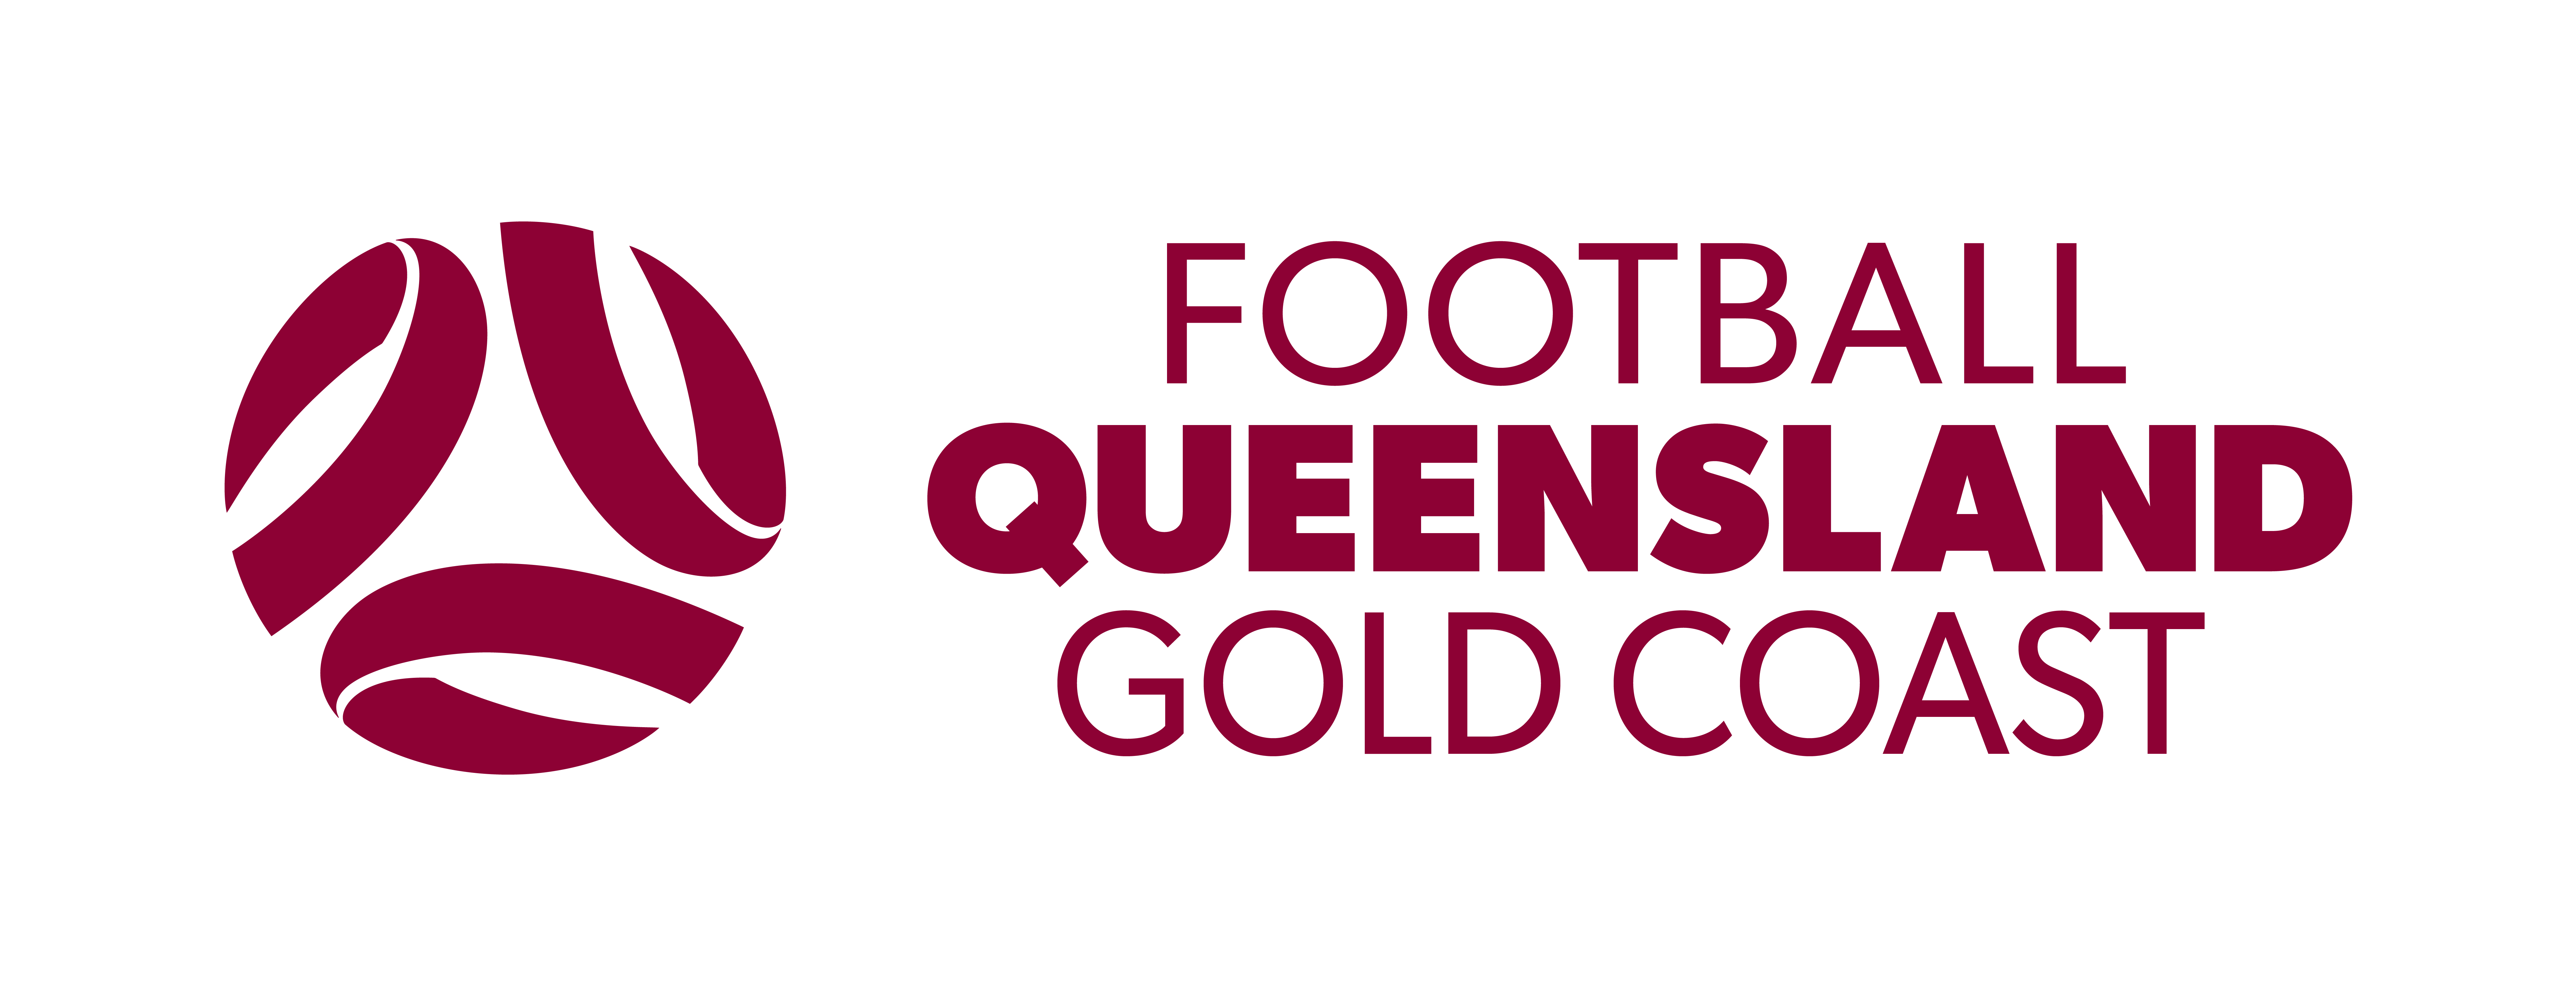 Football Gold Coast